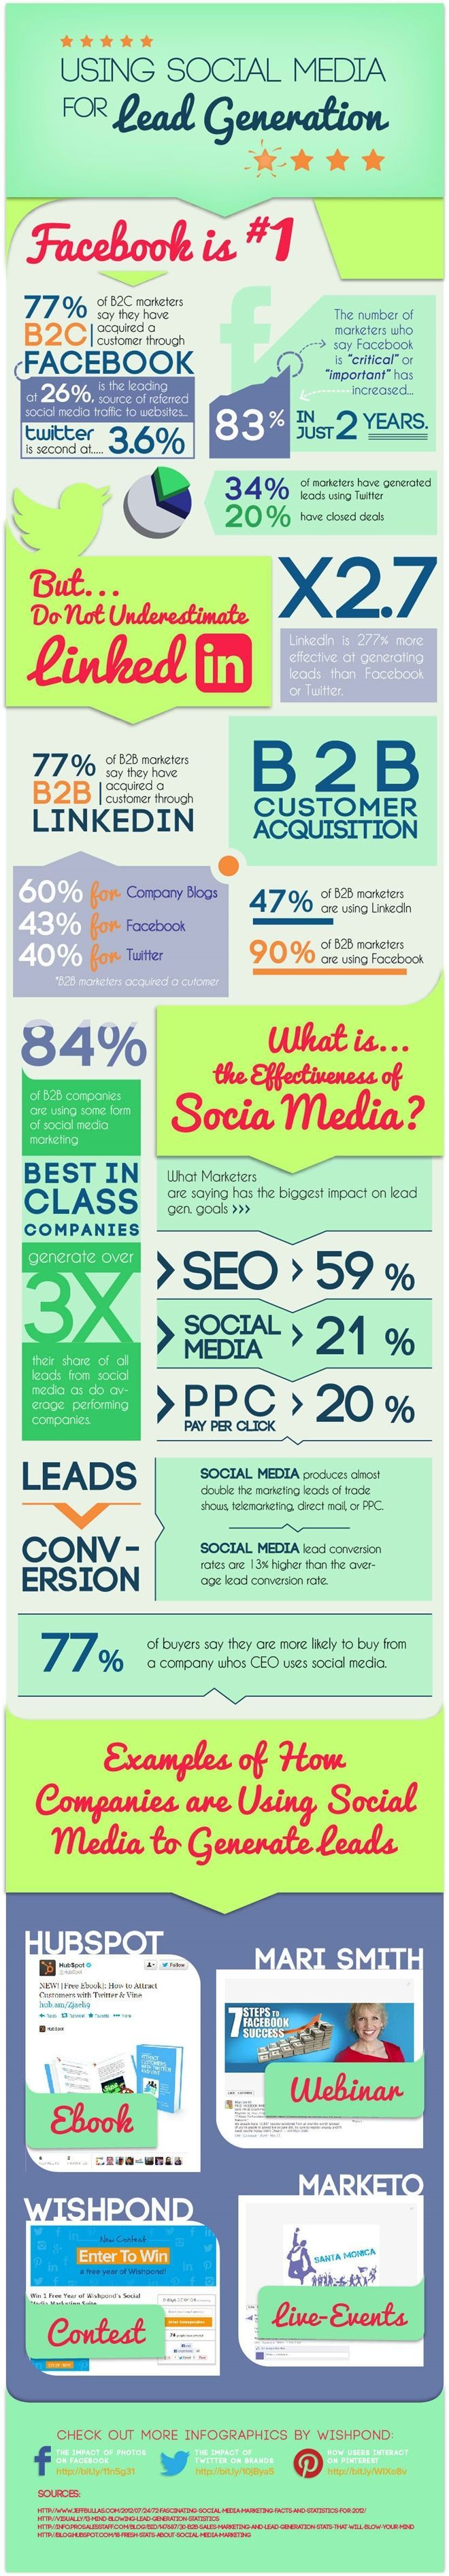 Infographic – Using Social Media For Lead Generation.  Social networks – Facebook, Twitter, LinkedIn, Google+ and Pinterest – are obviously a great way for business to get leads and attract more customers when used right. In fact this infographic by Wishpond shows that 77% of business-to-consumer marketers have acquired a customer through Facebook.